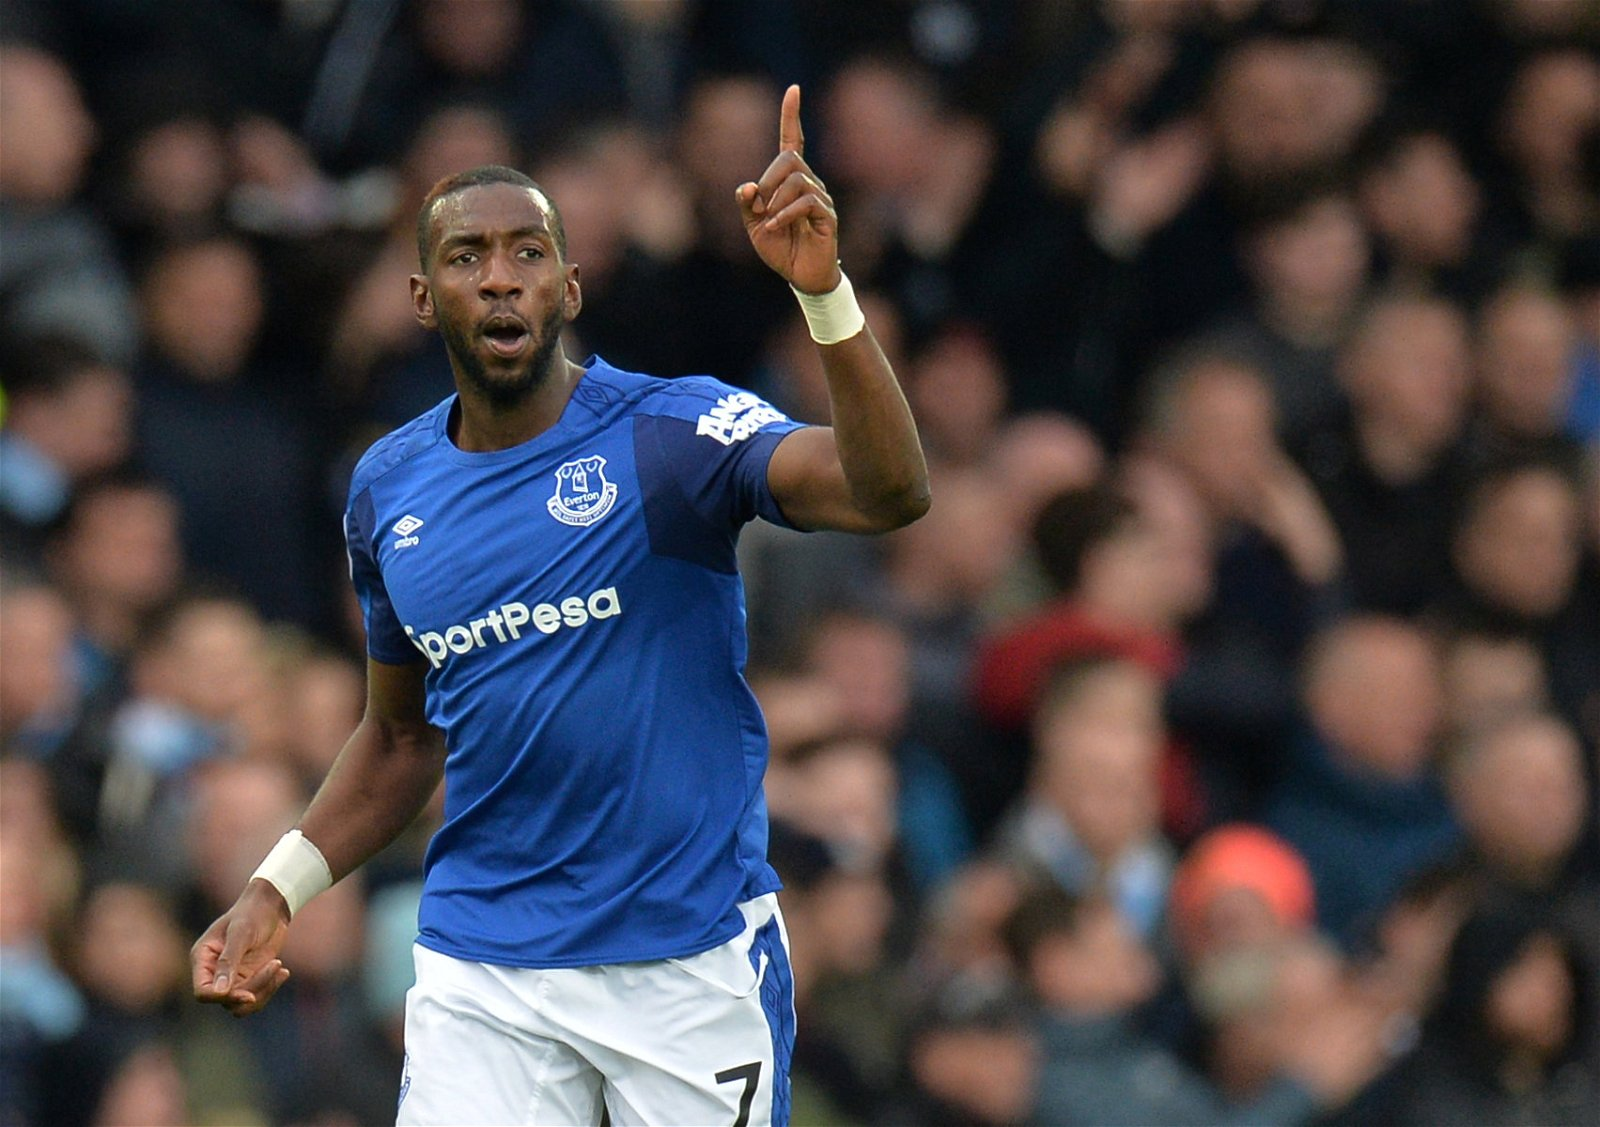 Yannick Bolasie celebrates scoring an Everton goal